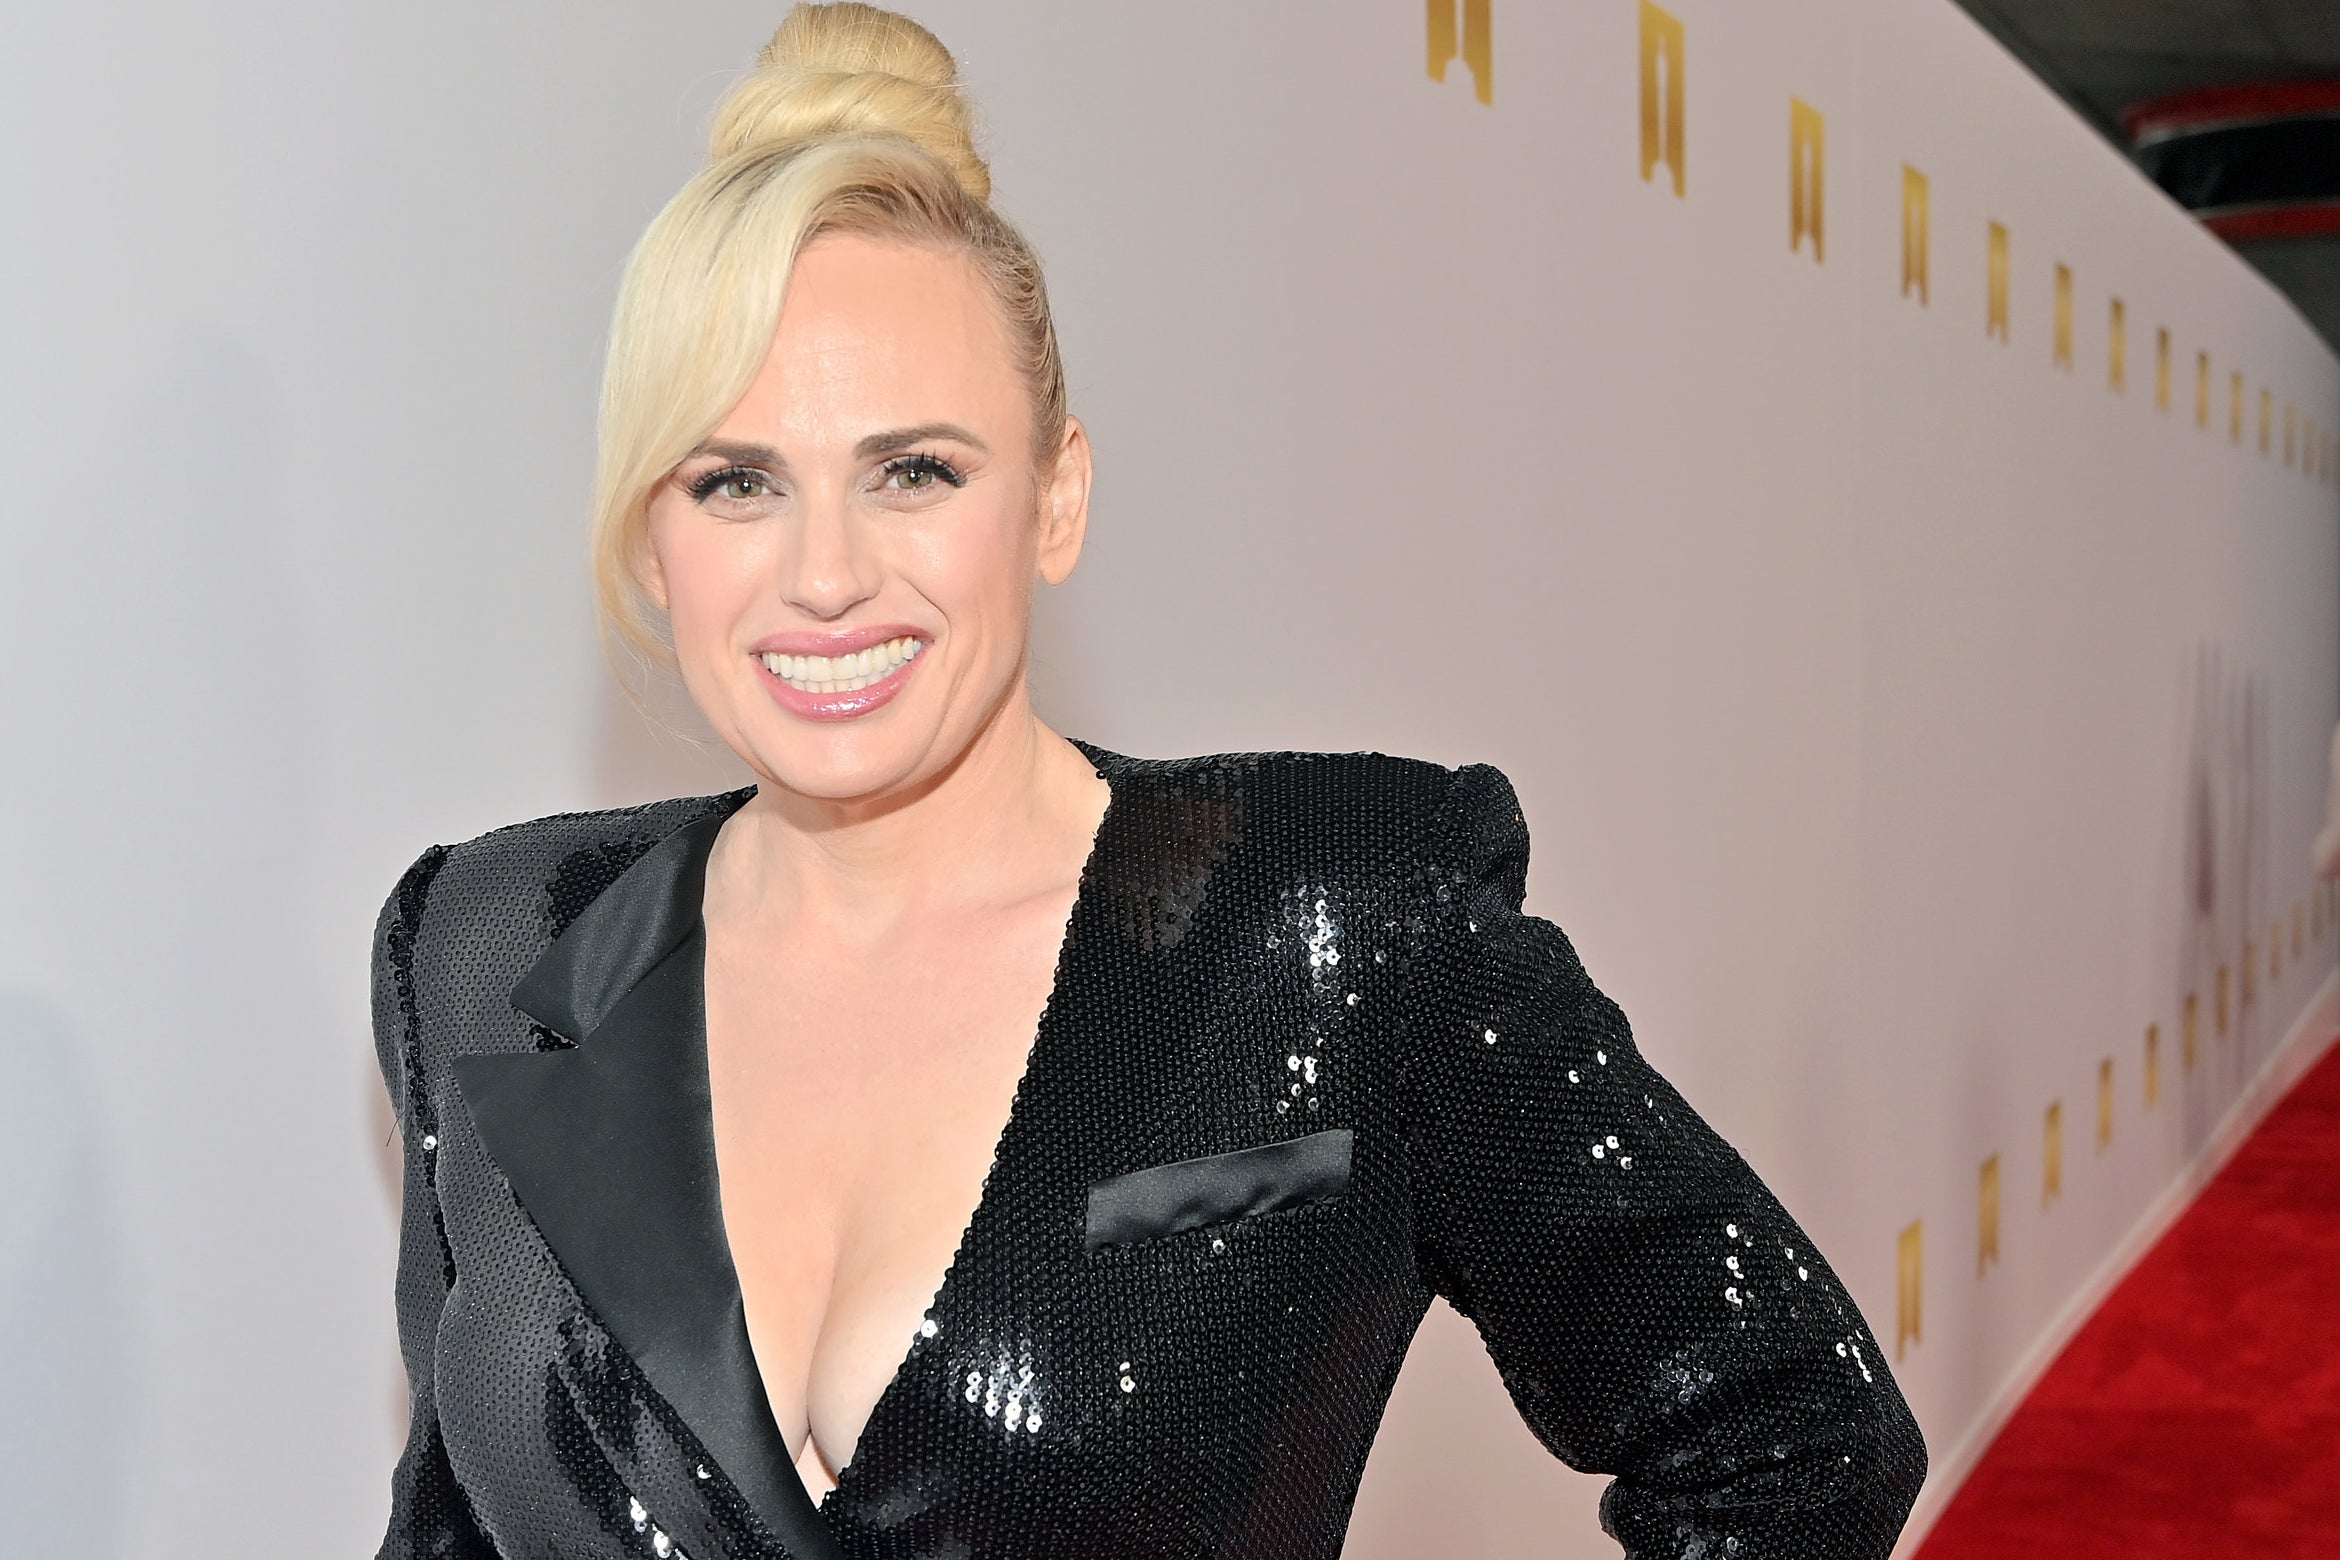 """Rebel Wilson Opened Up About The Frustrating Public """"Obsession"""" With Her Body Rather Than Her Career"""